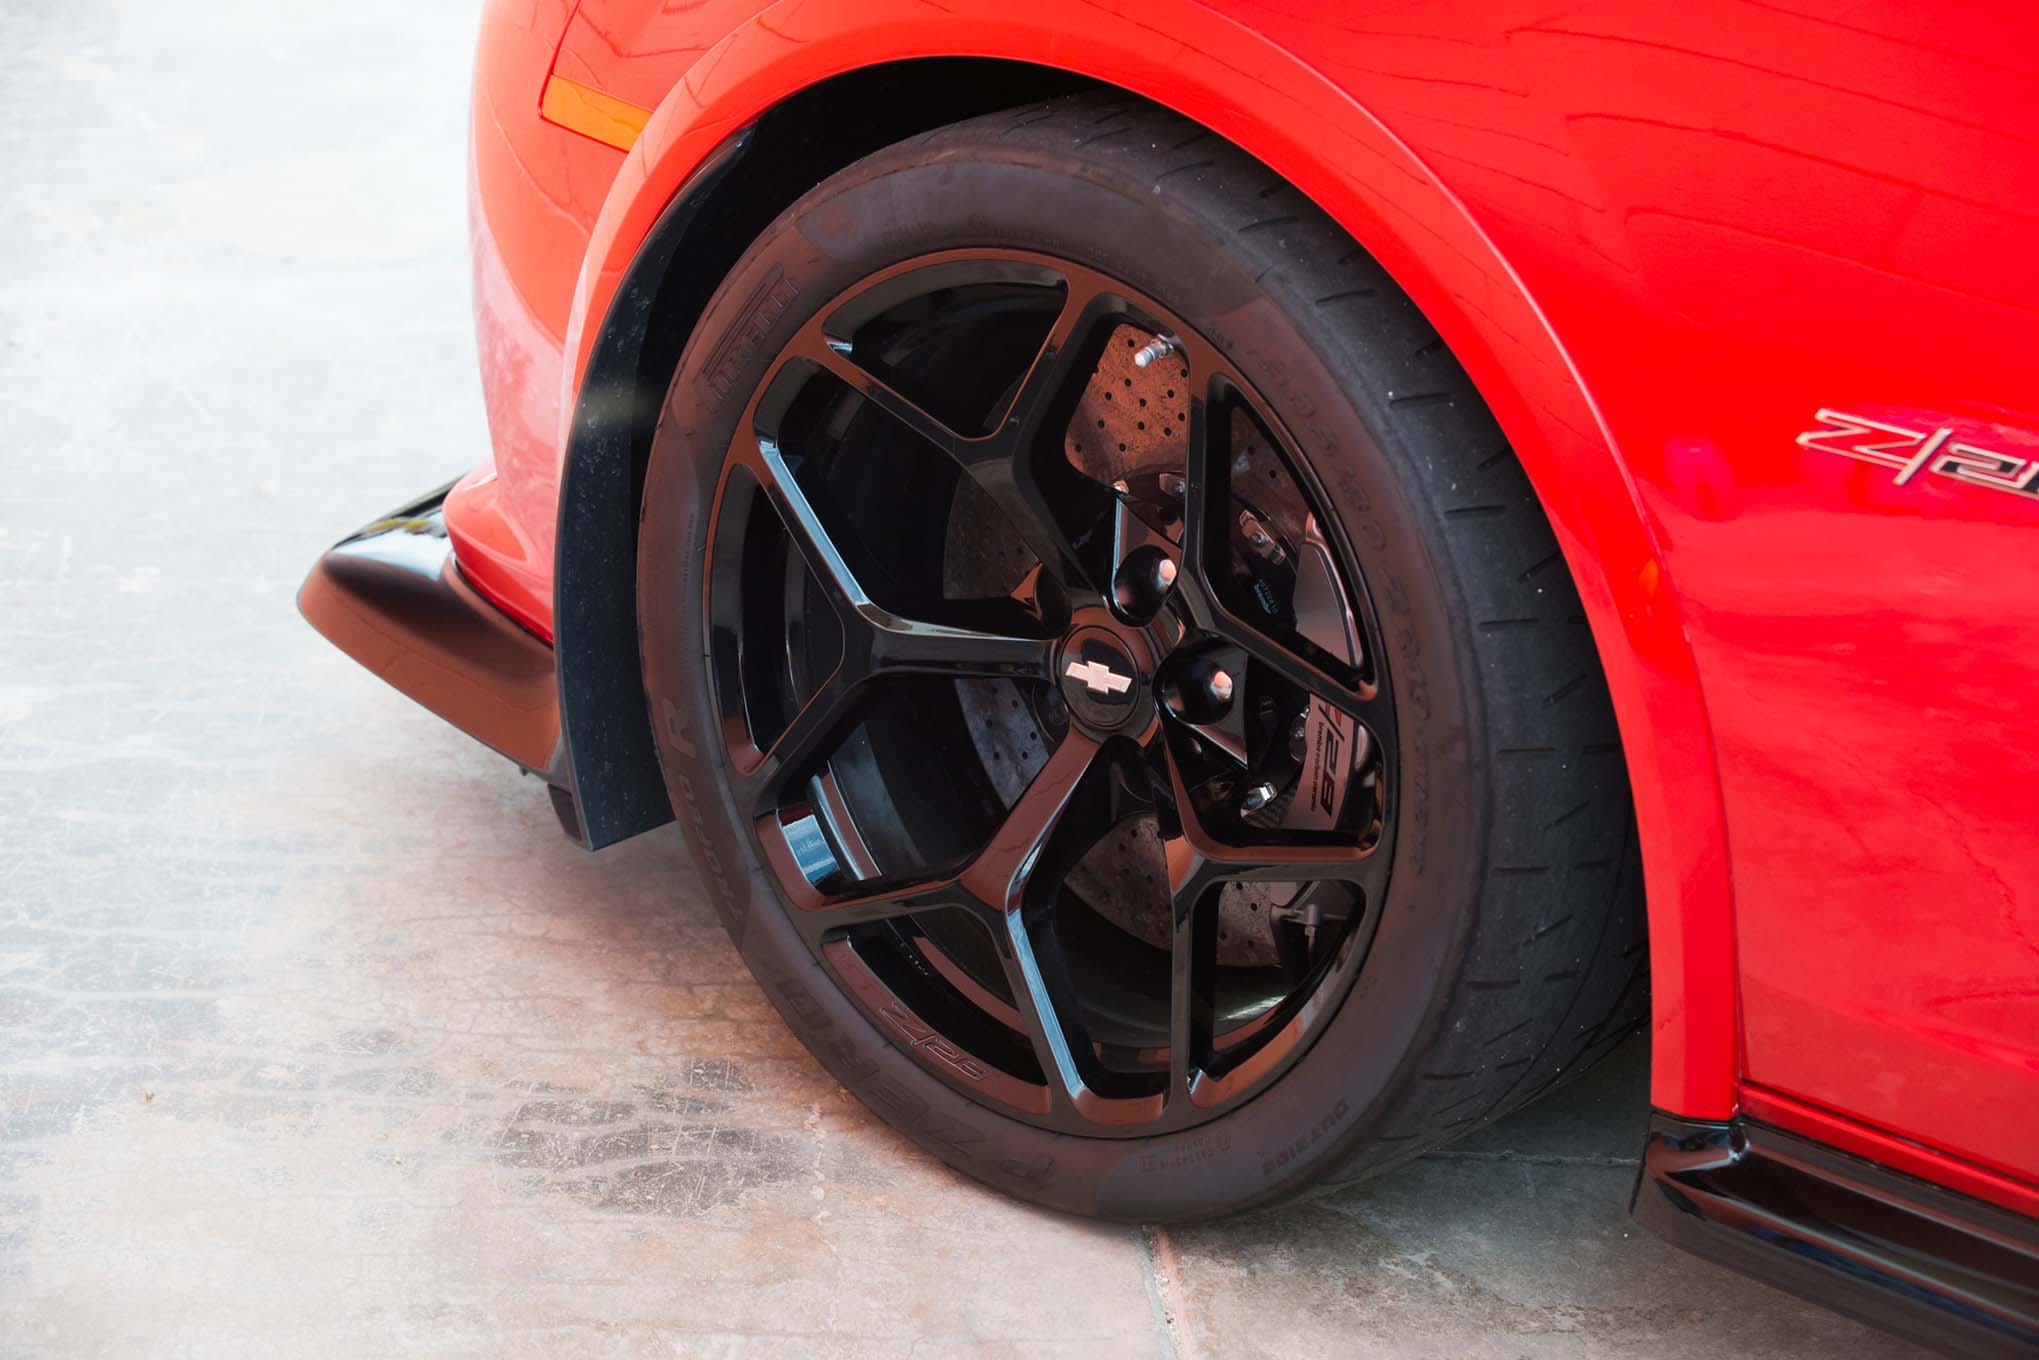 While the handling of any car is a system, depending on multiple components, there's no replacement for really good rubber. The Z/28 rolls on 19x11 front, 19x11.5 rear wheels and wraps them in Pirelli PZero Trofeo 305/30R19 tires; $2,200 can get you a set of the Pirellis for your own car, assuming you have enough fender clearance to wear them.